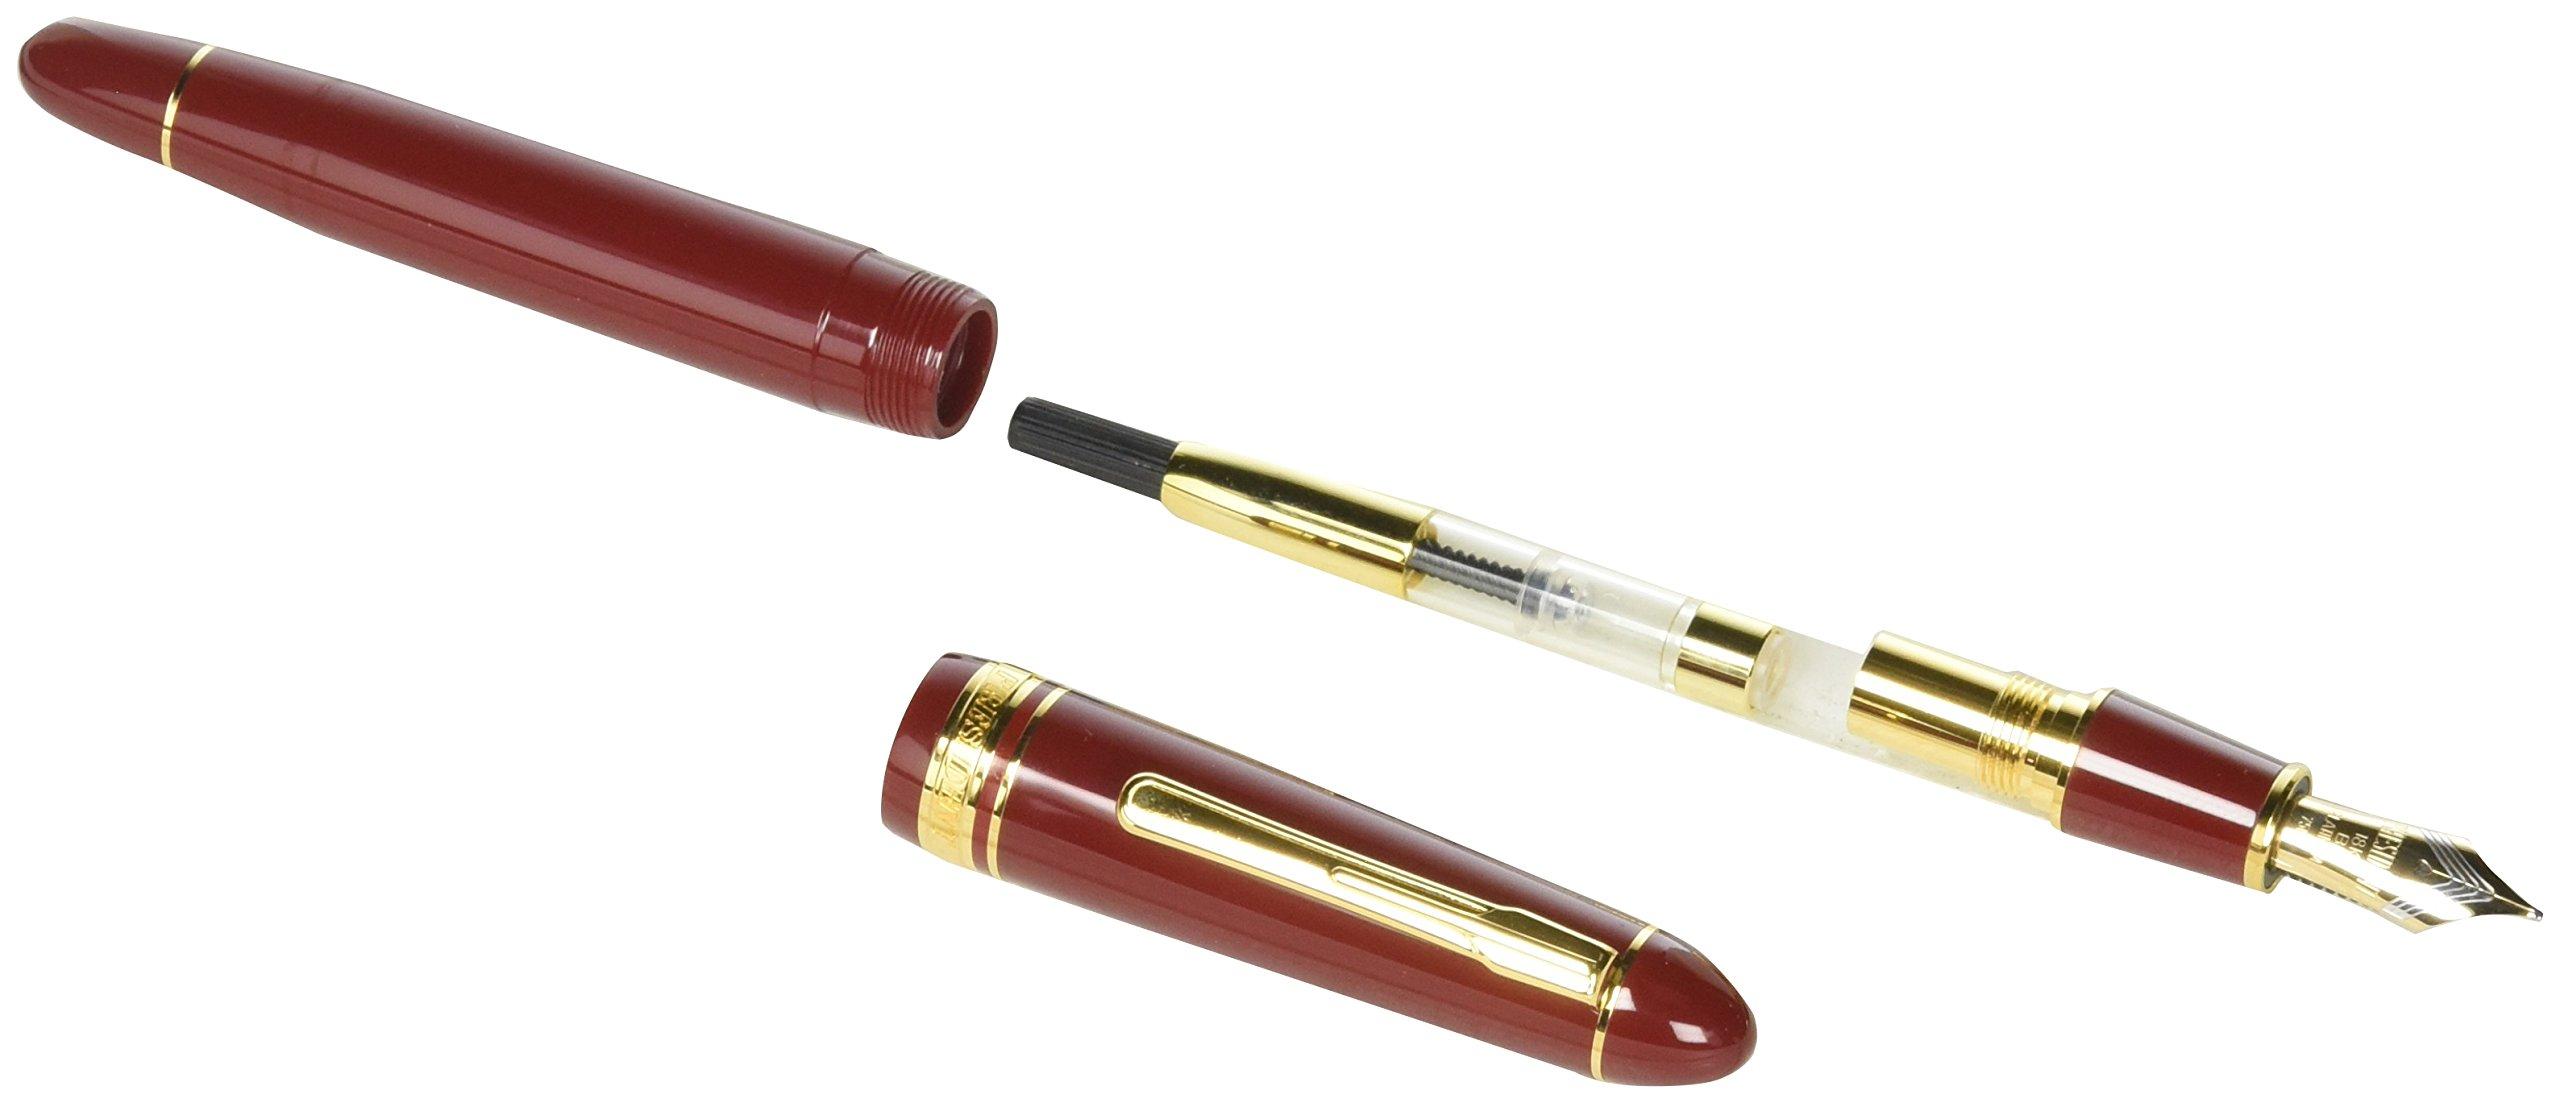 Platinum Fountain Pen President #10 Burgundy and Gold- PTB20000P - B by Platinum (Image #2)